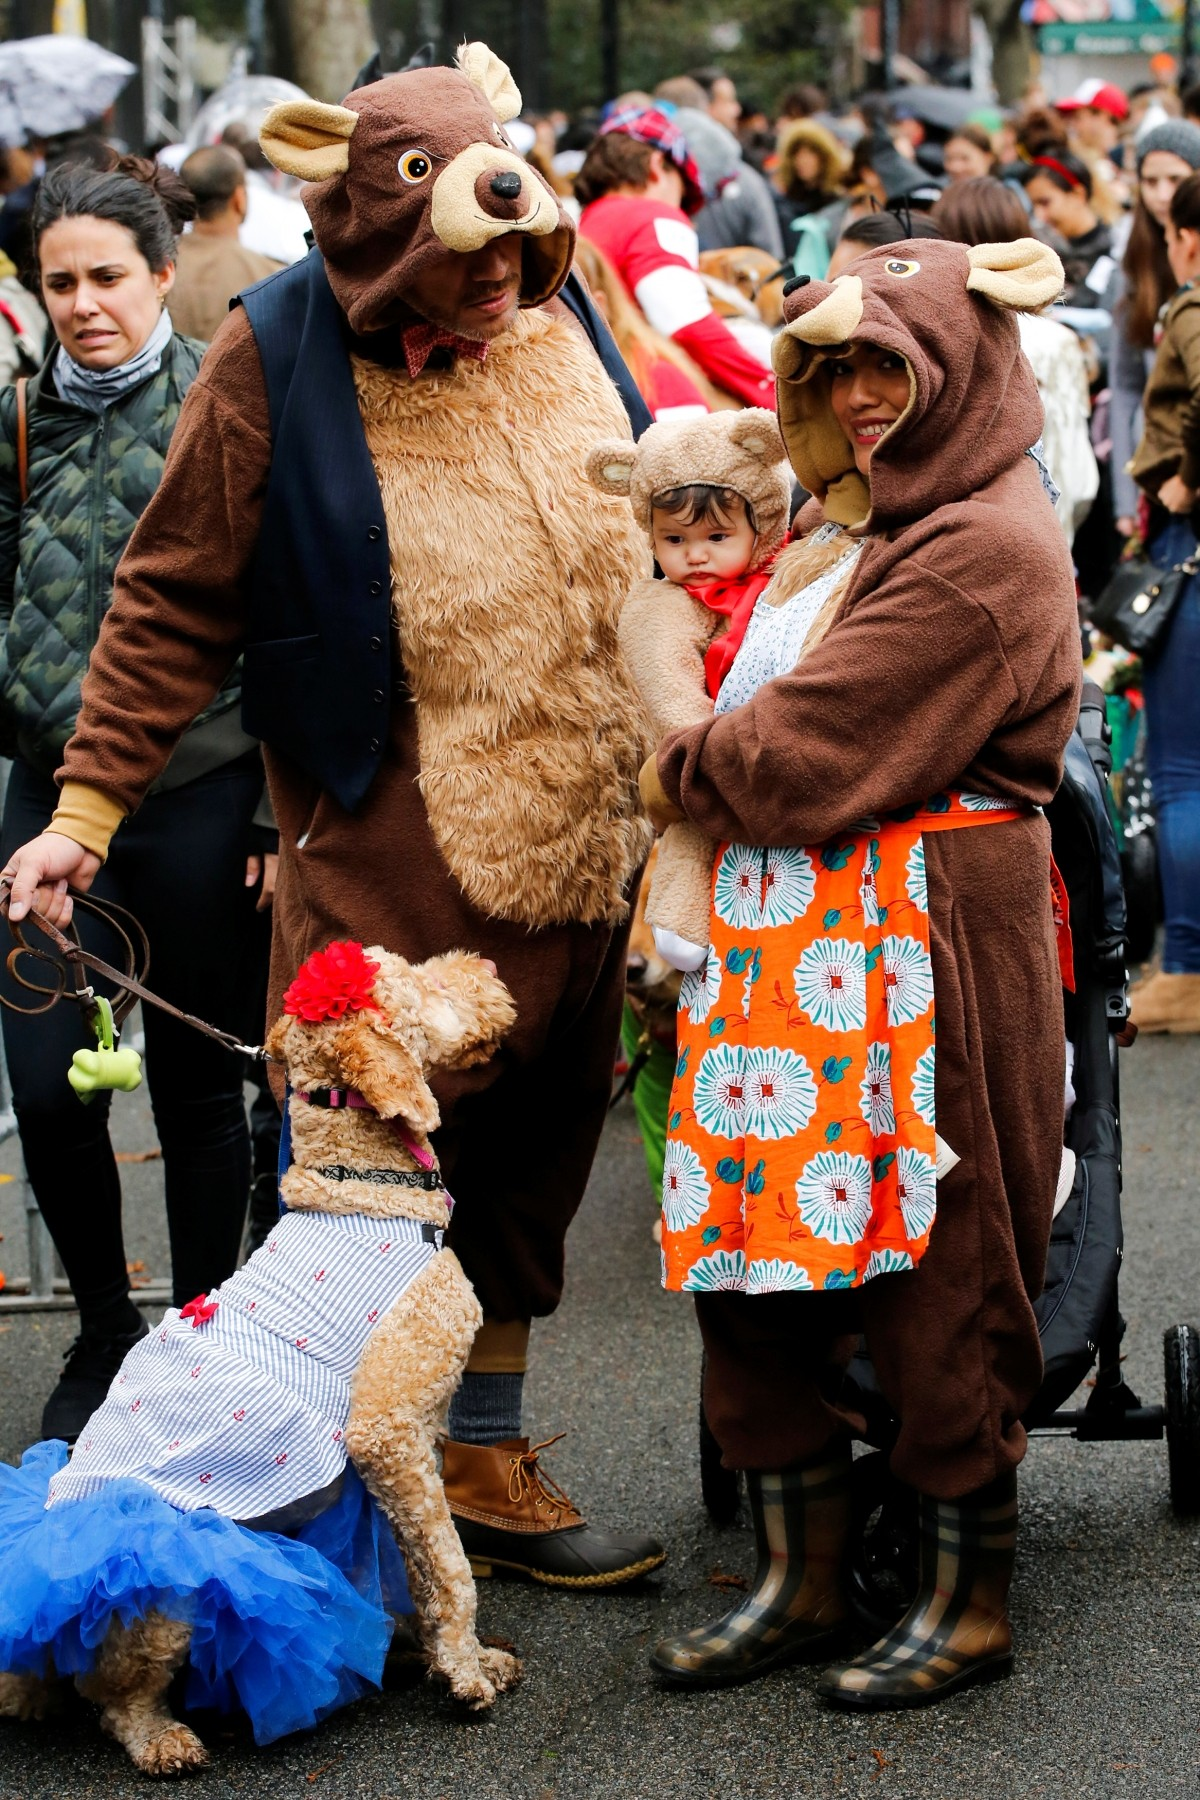 Revellers take part in the annual halloween dog parade at Manhattan's Tompkins Square Park in New York, U.S. October 22, 2016.